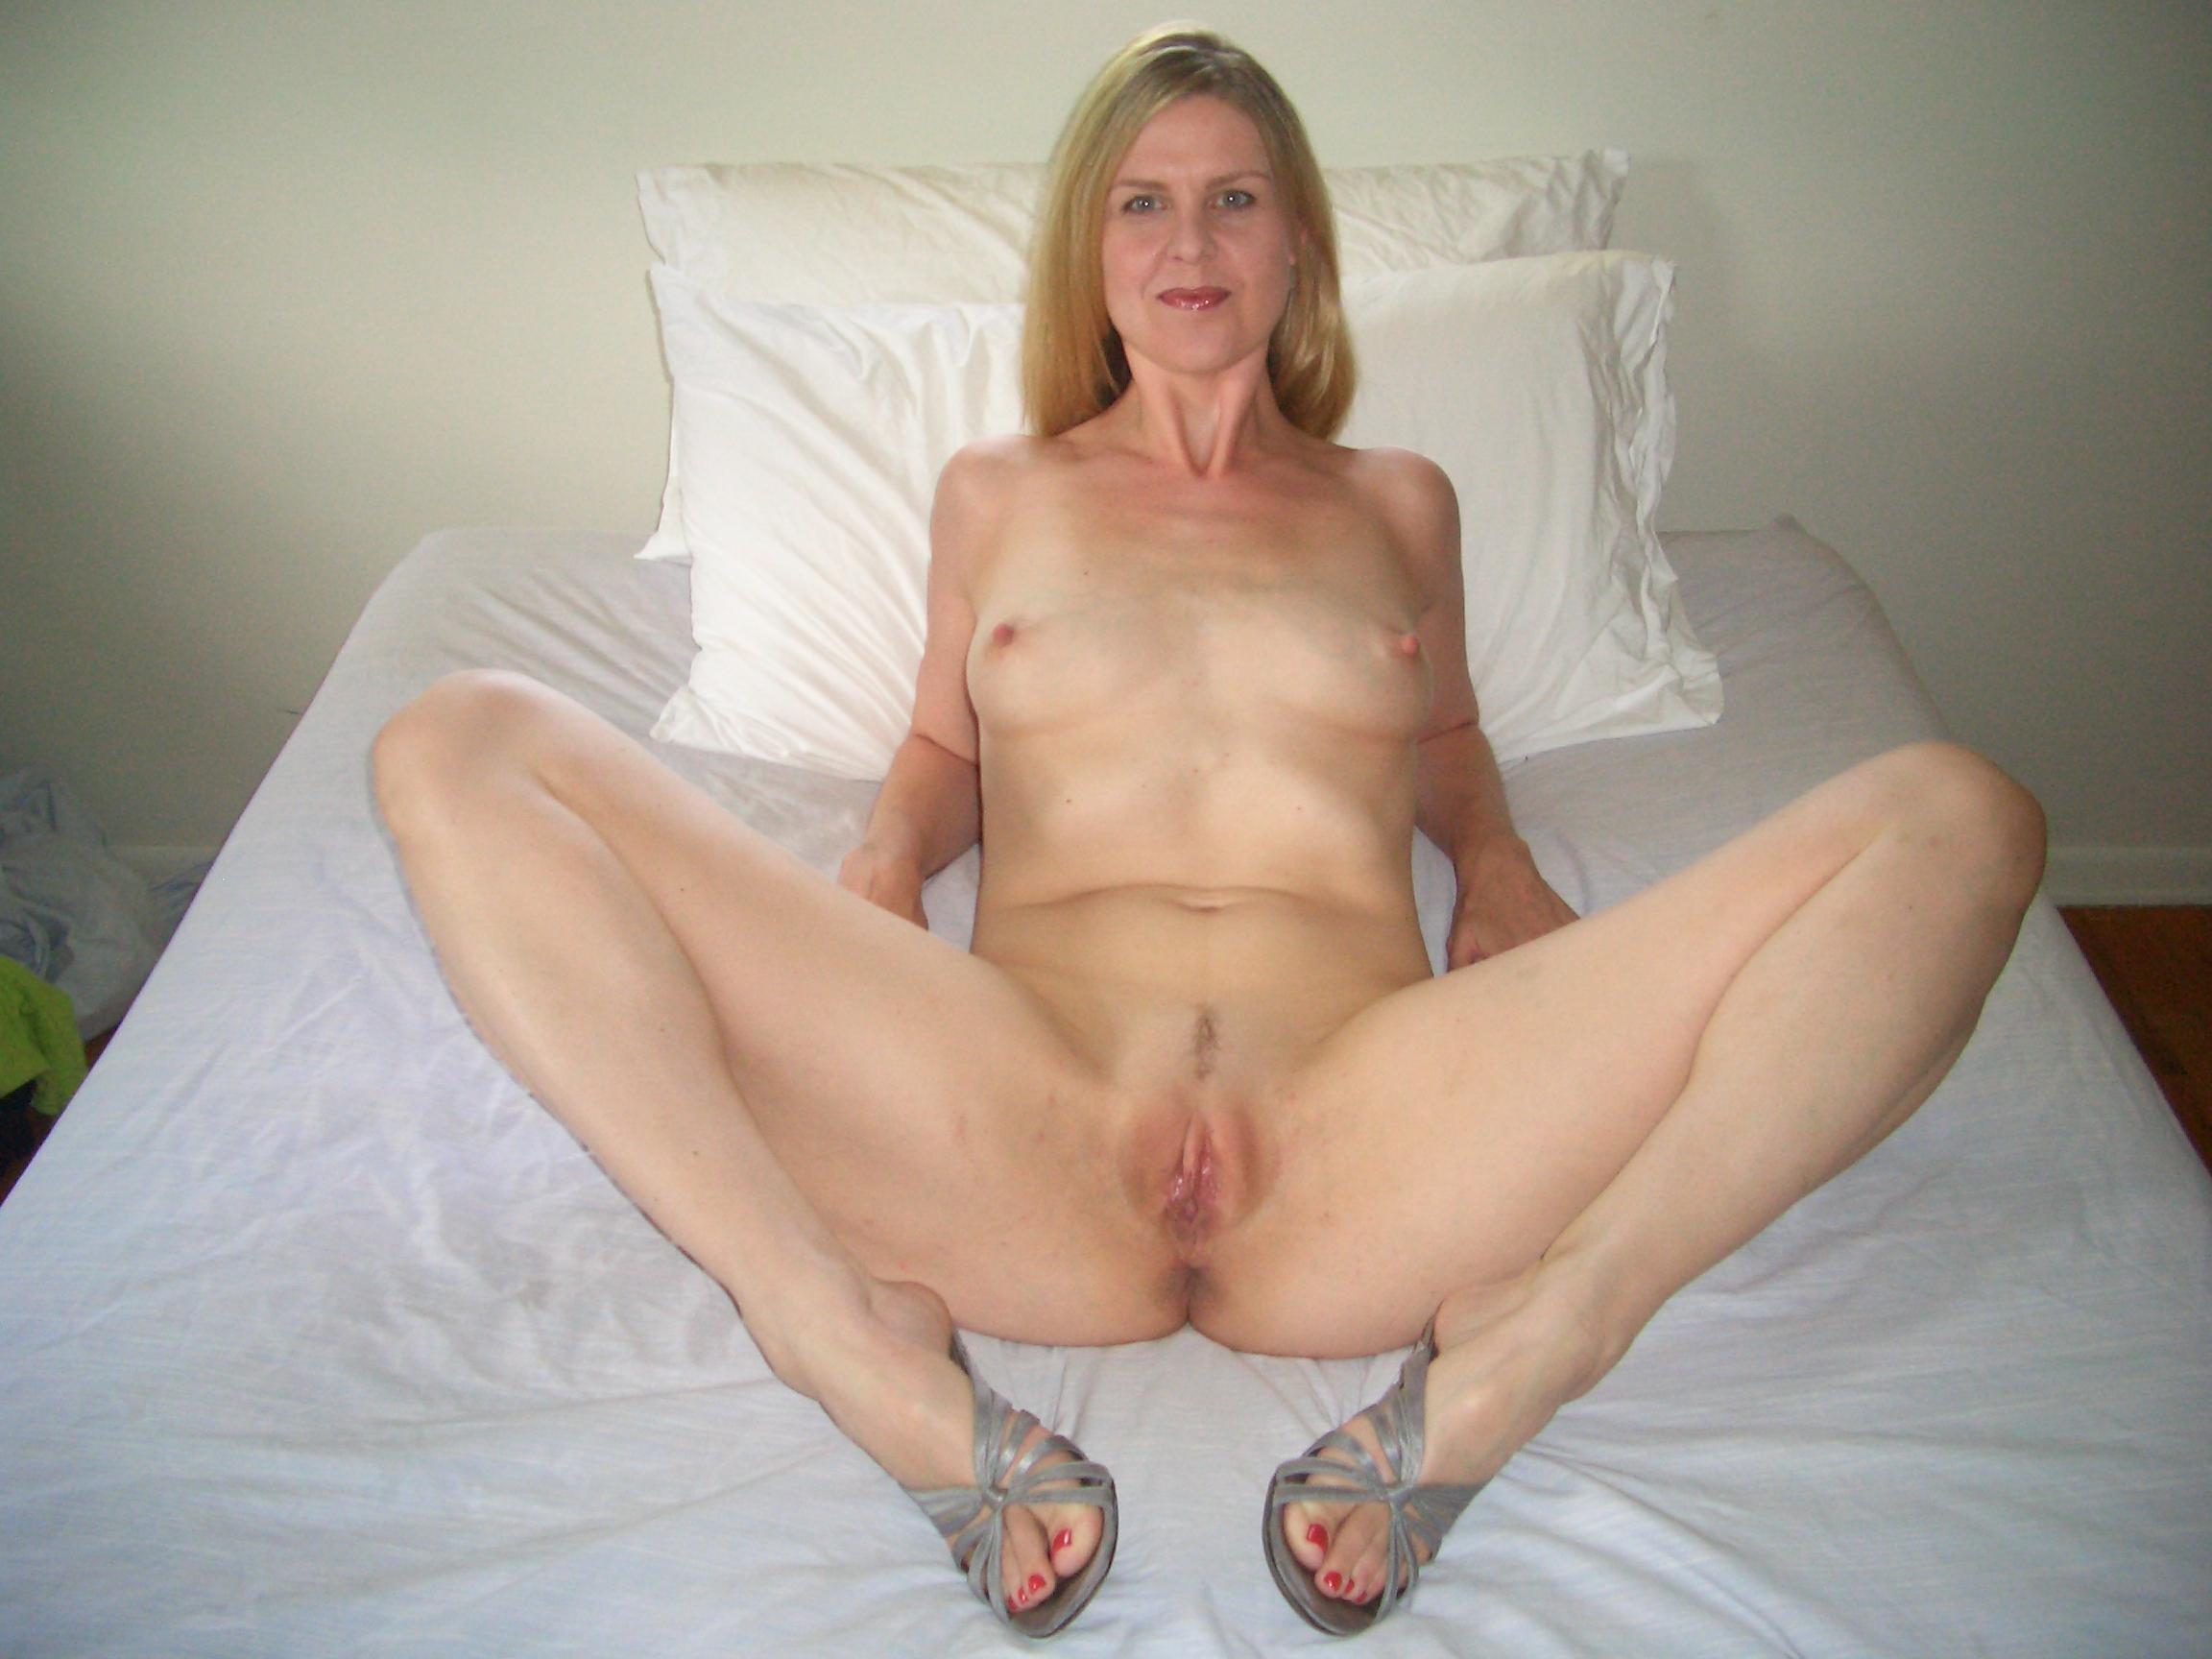 Mature bed spread in nude milfs